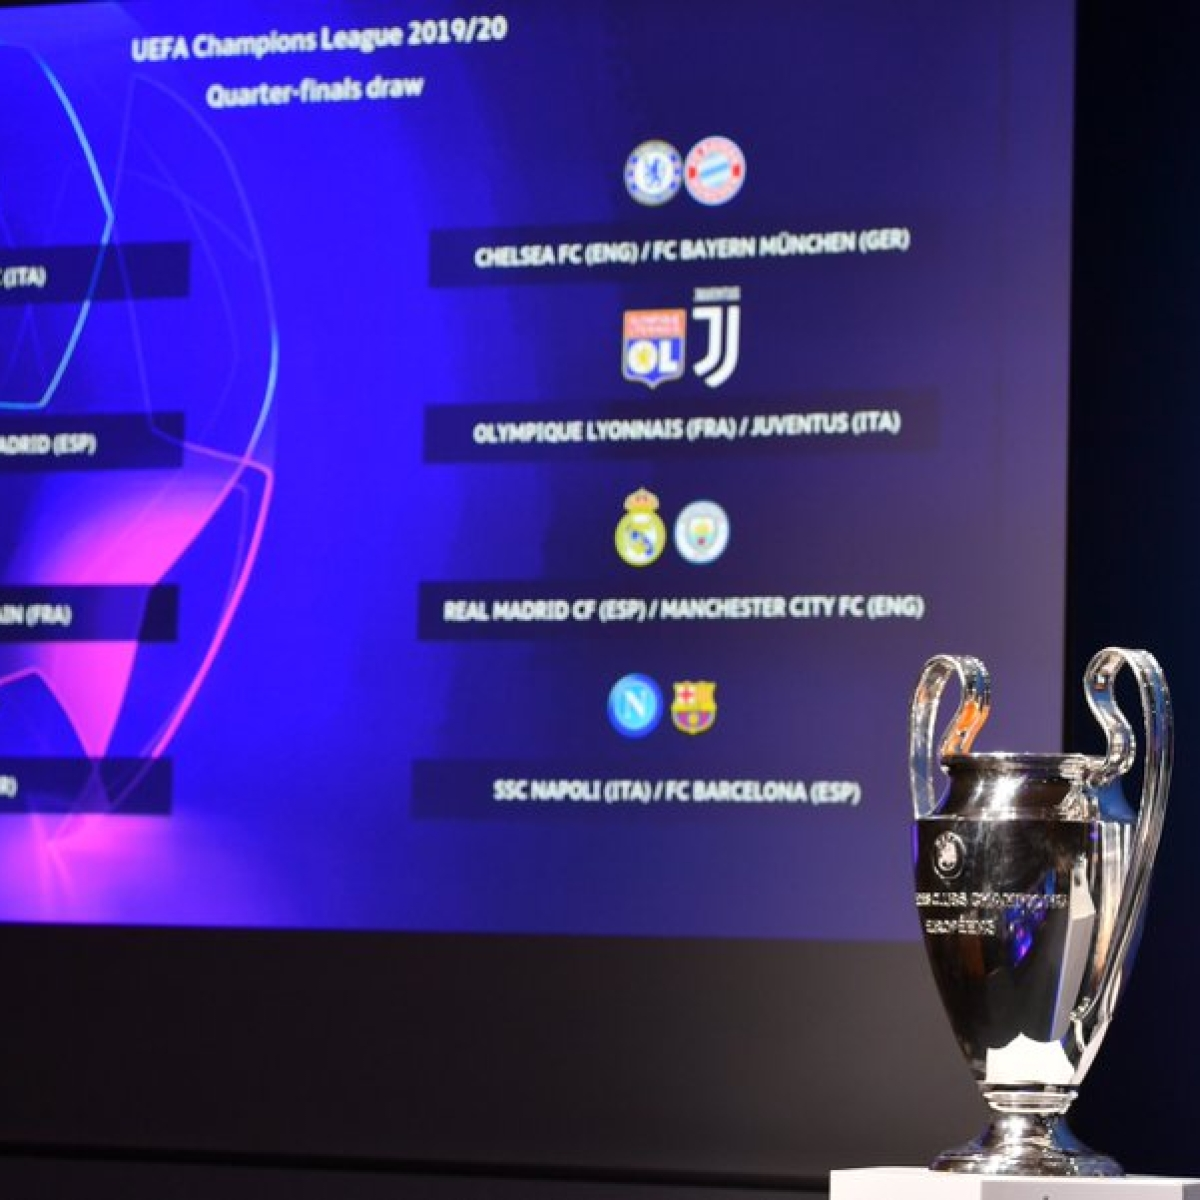 UEFA Champions League: Check out the quarter-finals draw for Real Madrid, Barcelona and others